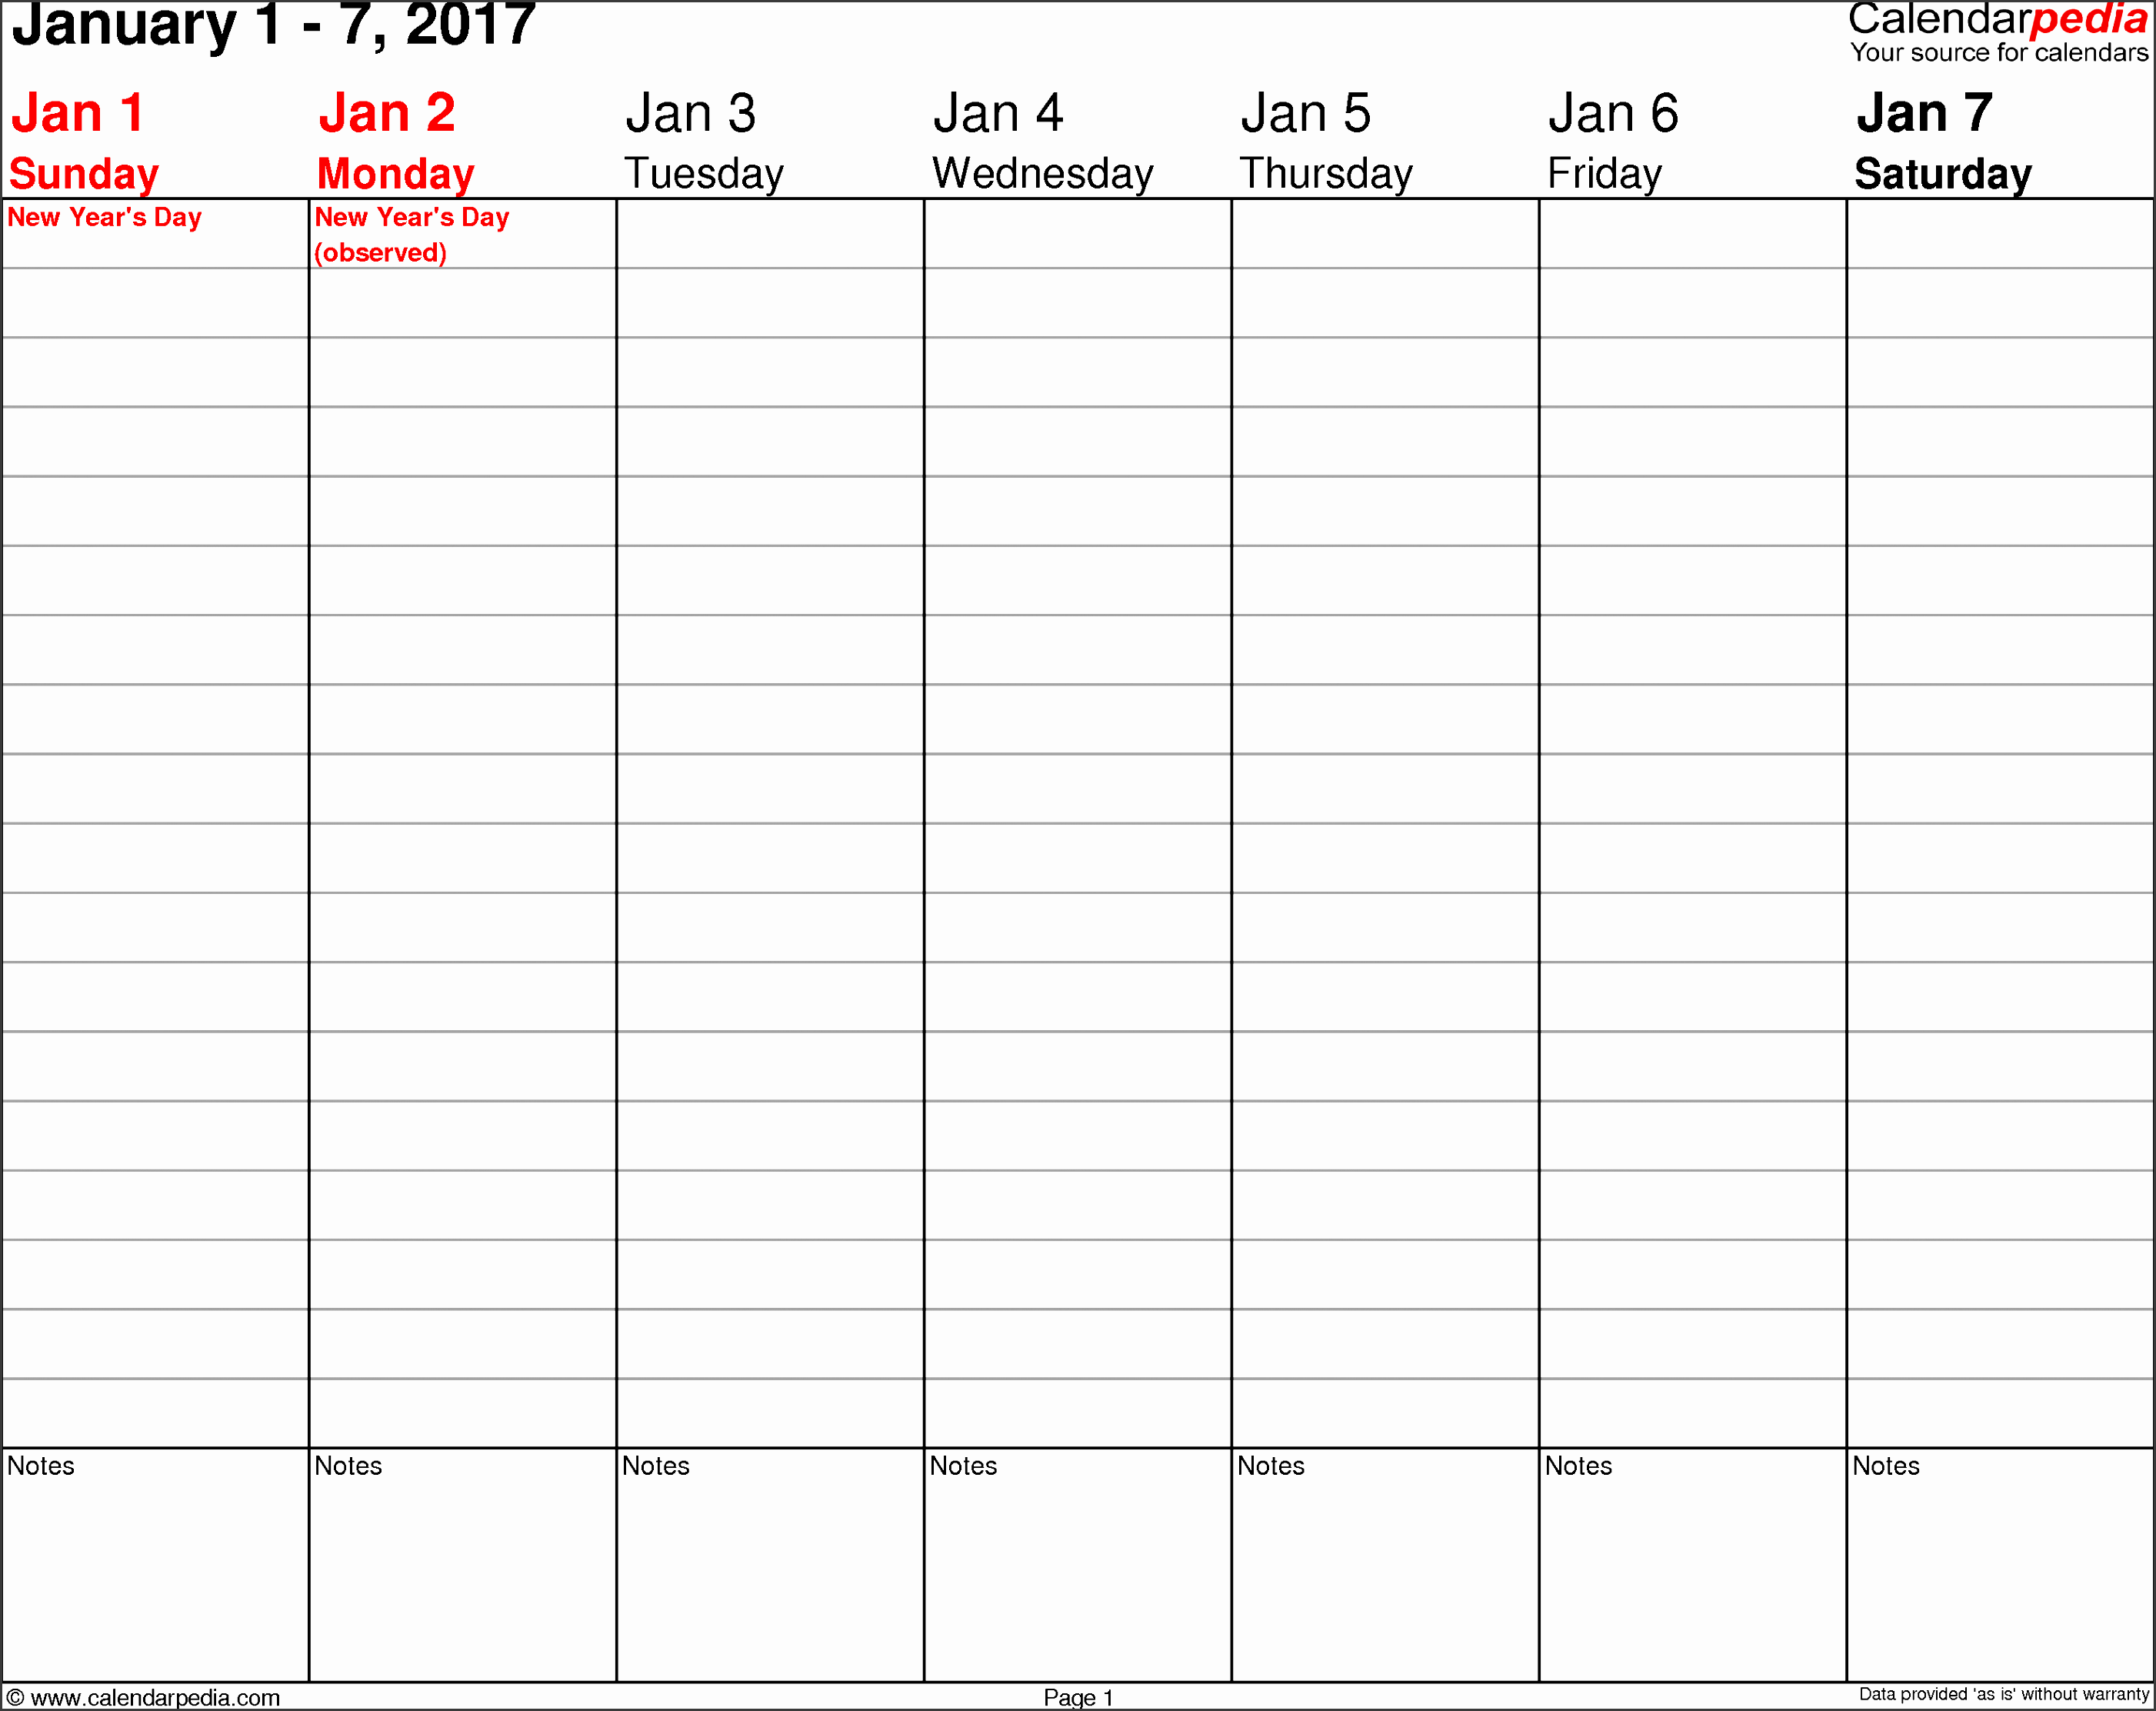 weekly calendar 2017 template for word version 3 landscape 53 pages no